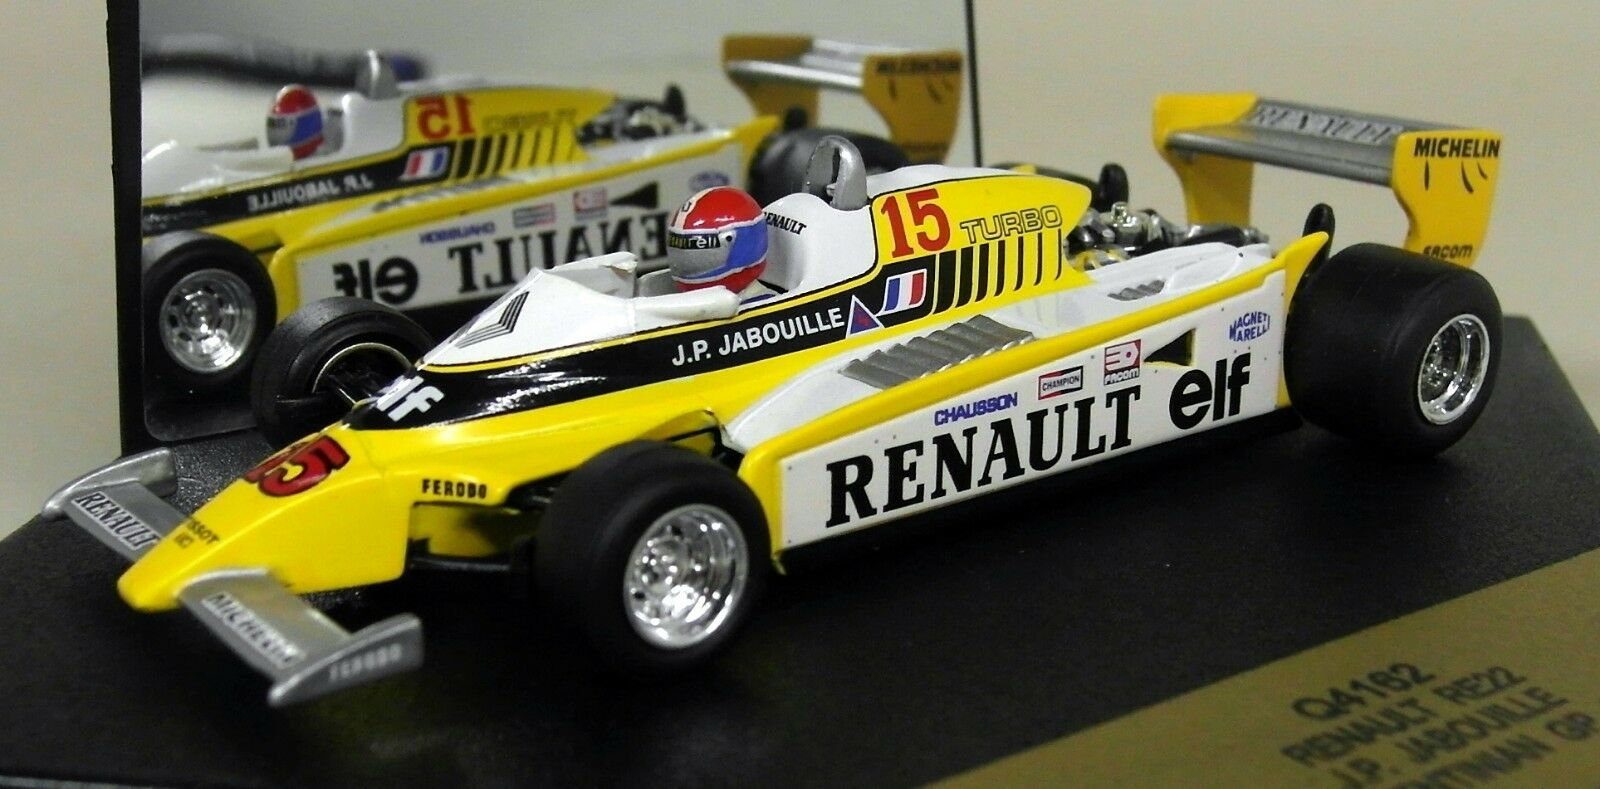 Quartzo SCALA  Q4162 RENAULT RE22 plataINA GP 1980 JABOUILLE Diecast F1 AUTO